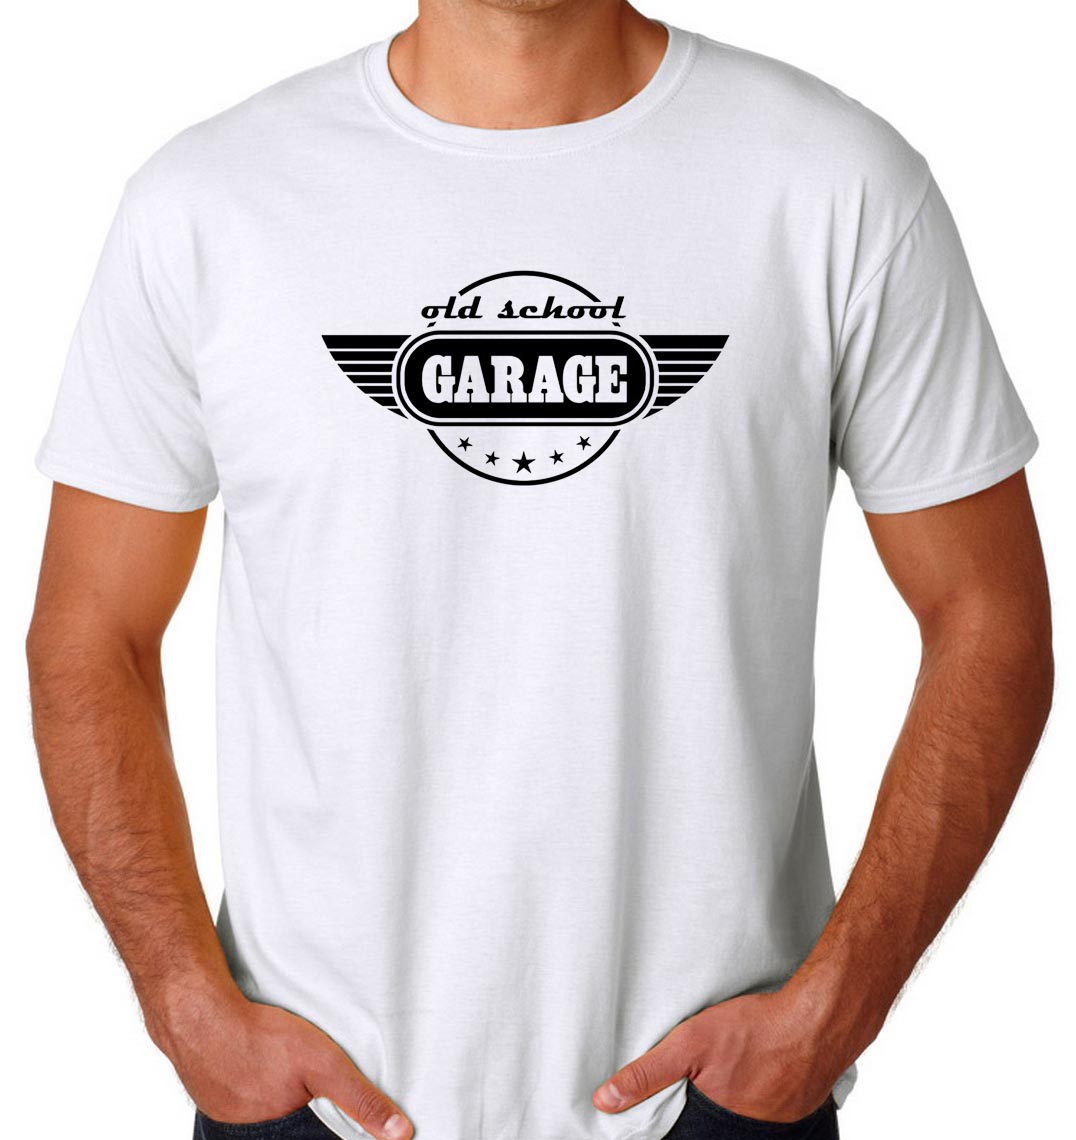 Old School Garage Buy Old School Garage Cheap T Shirt Ferolos